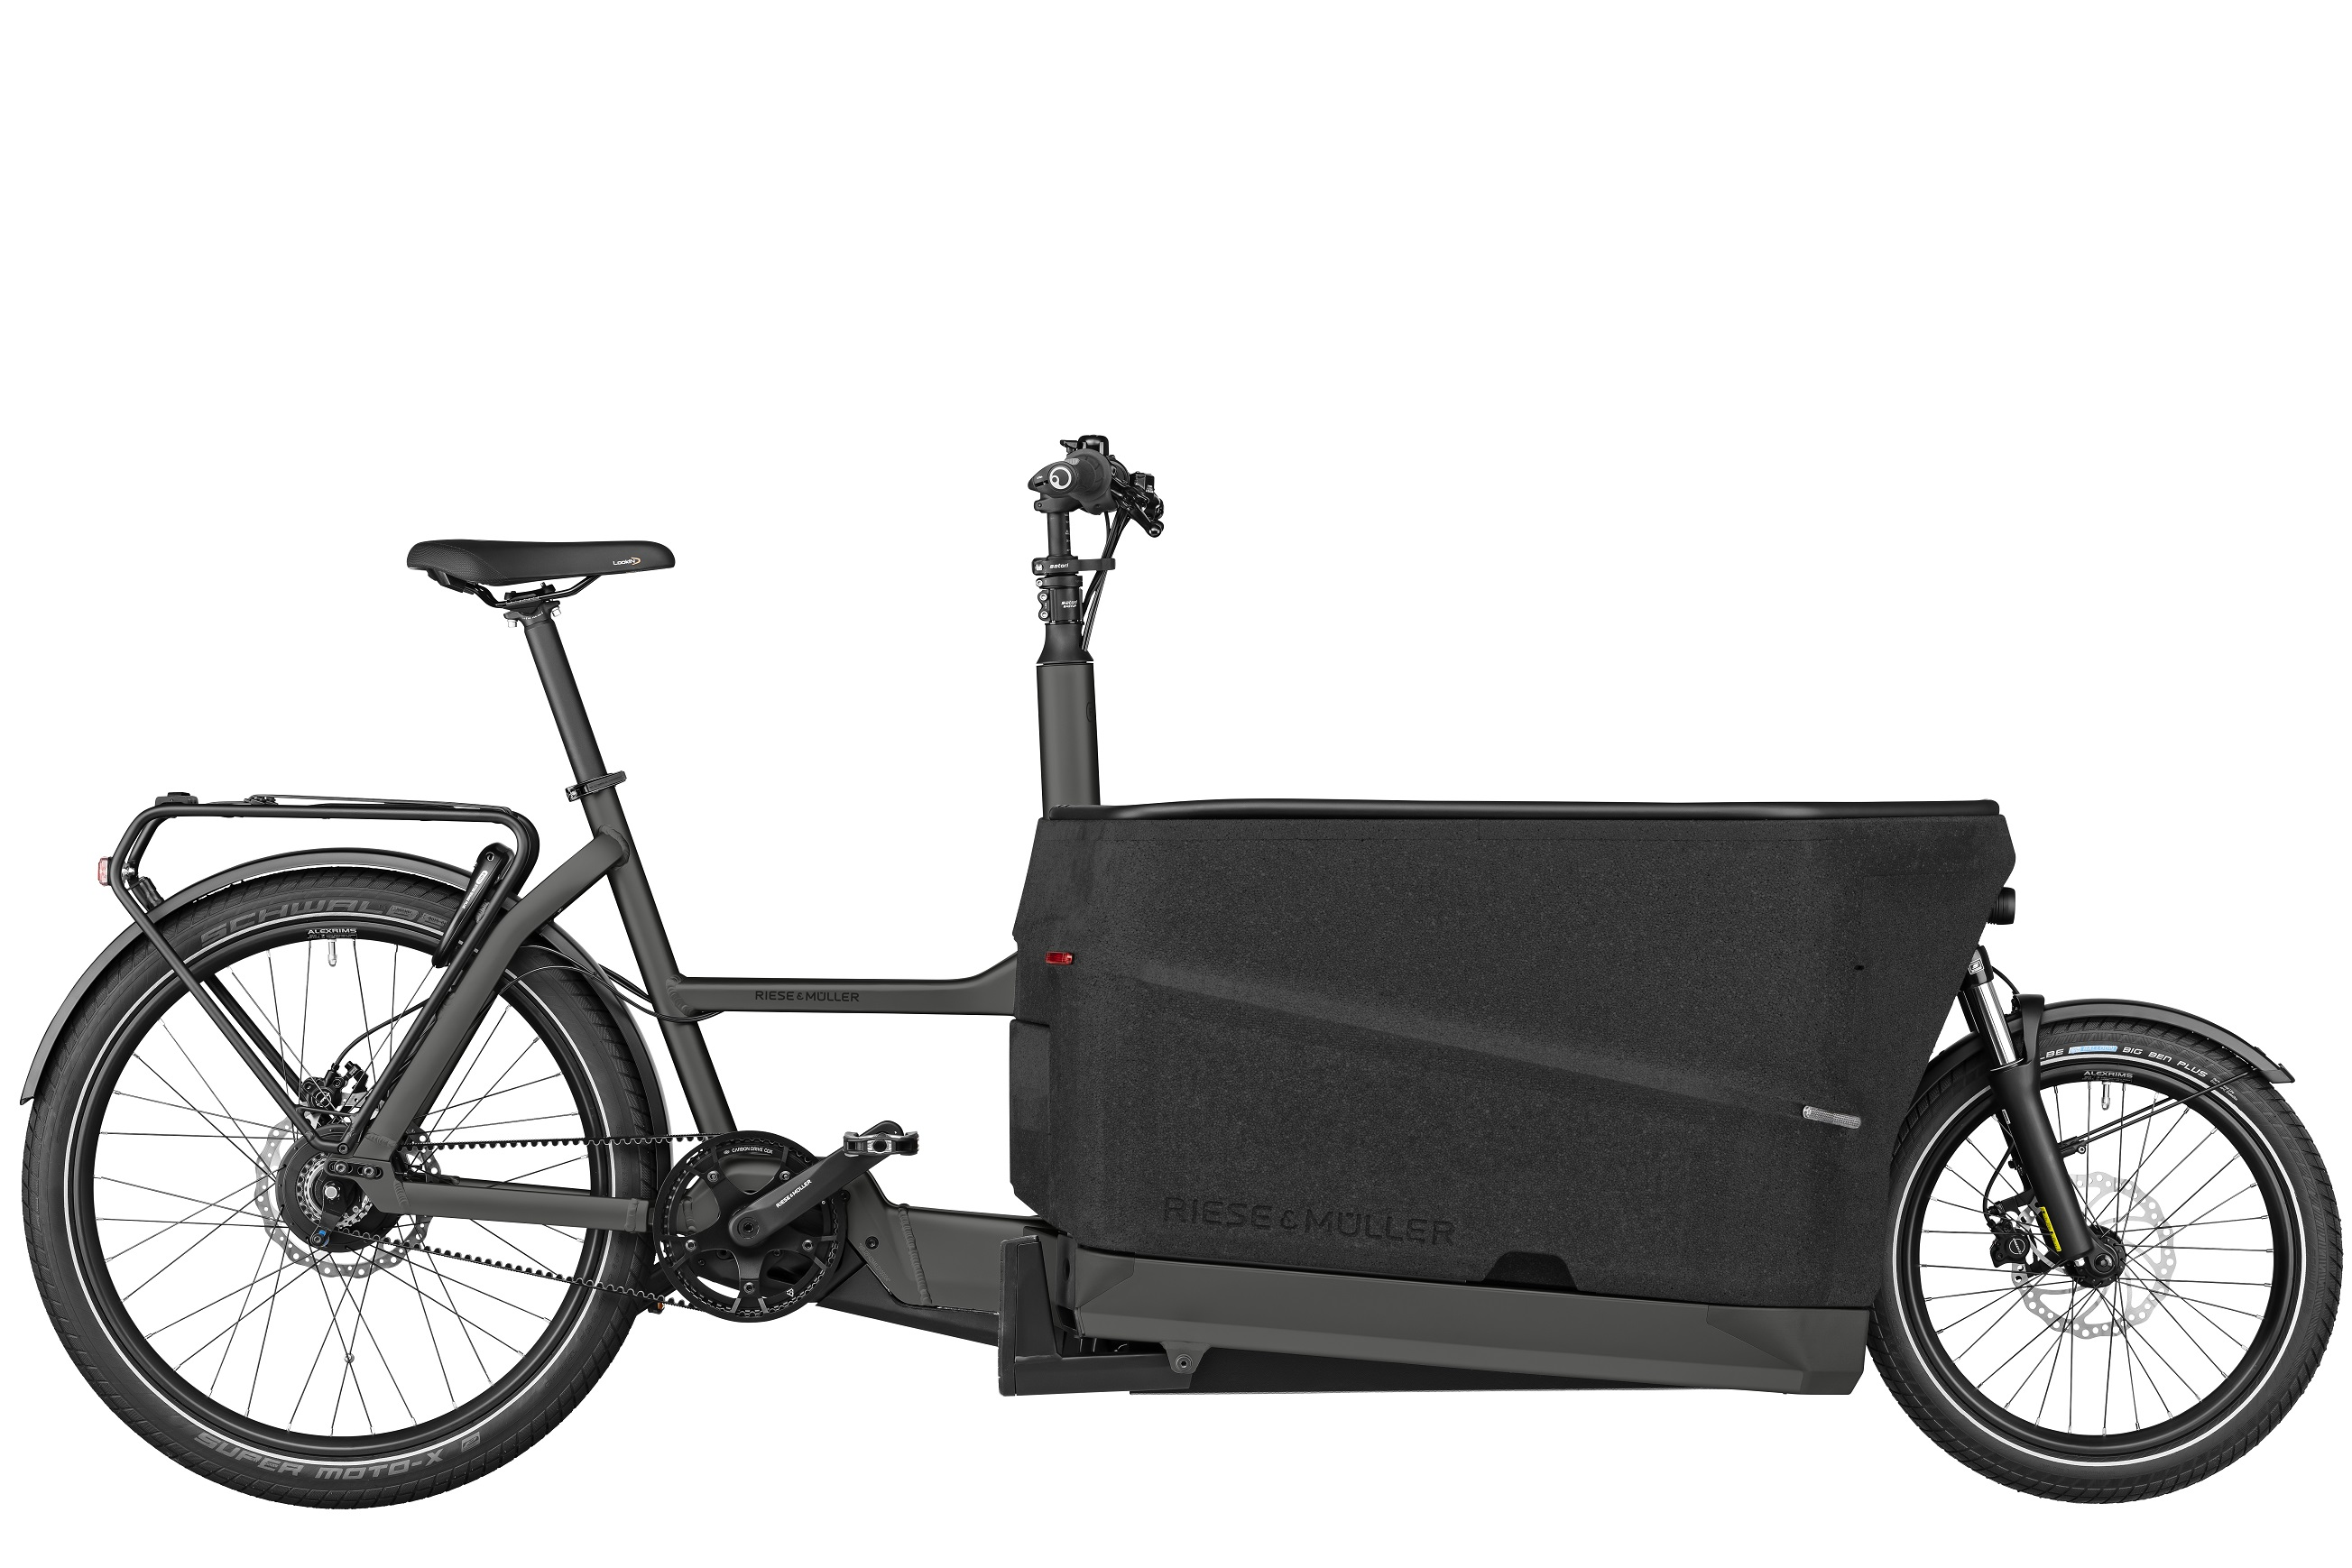 Riese&Müller R&M Packster70 vario 1250W